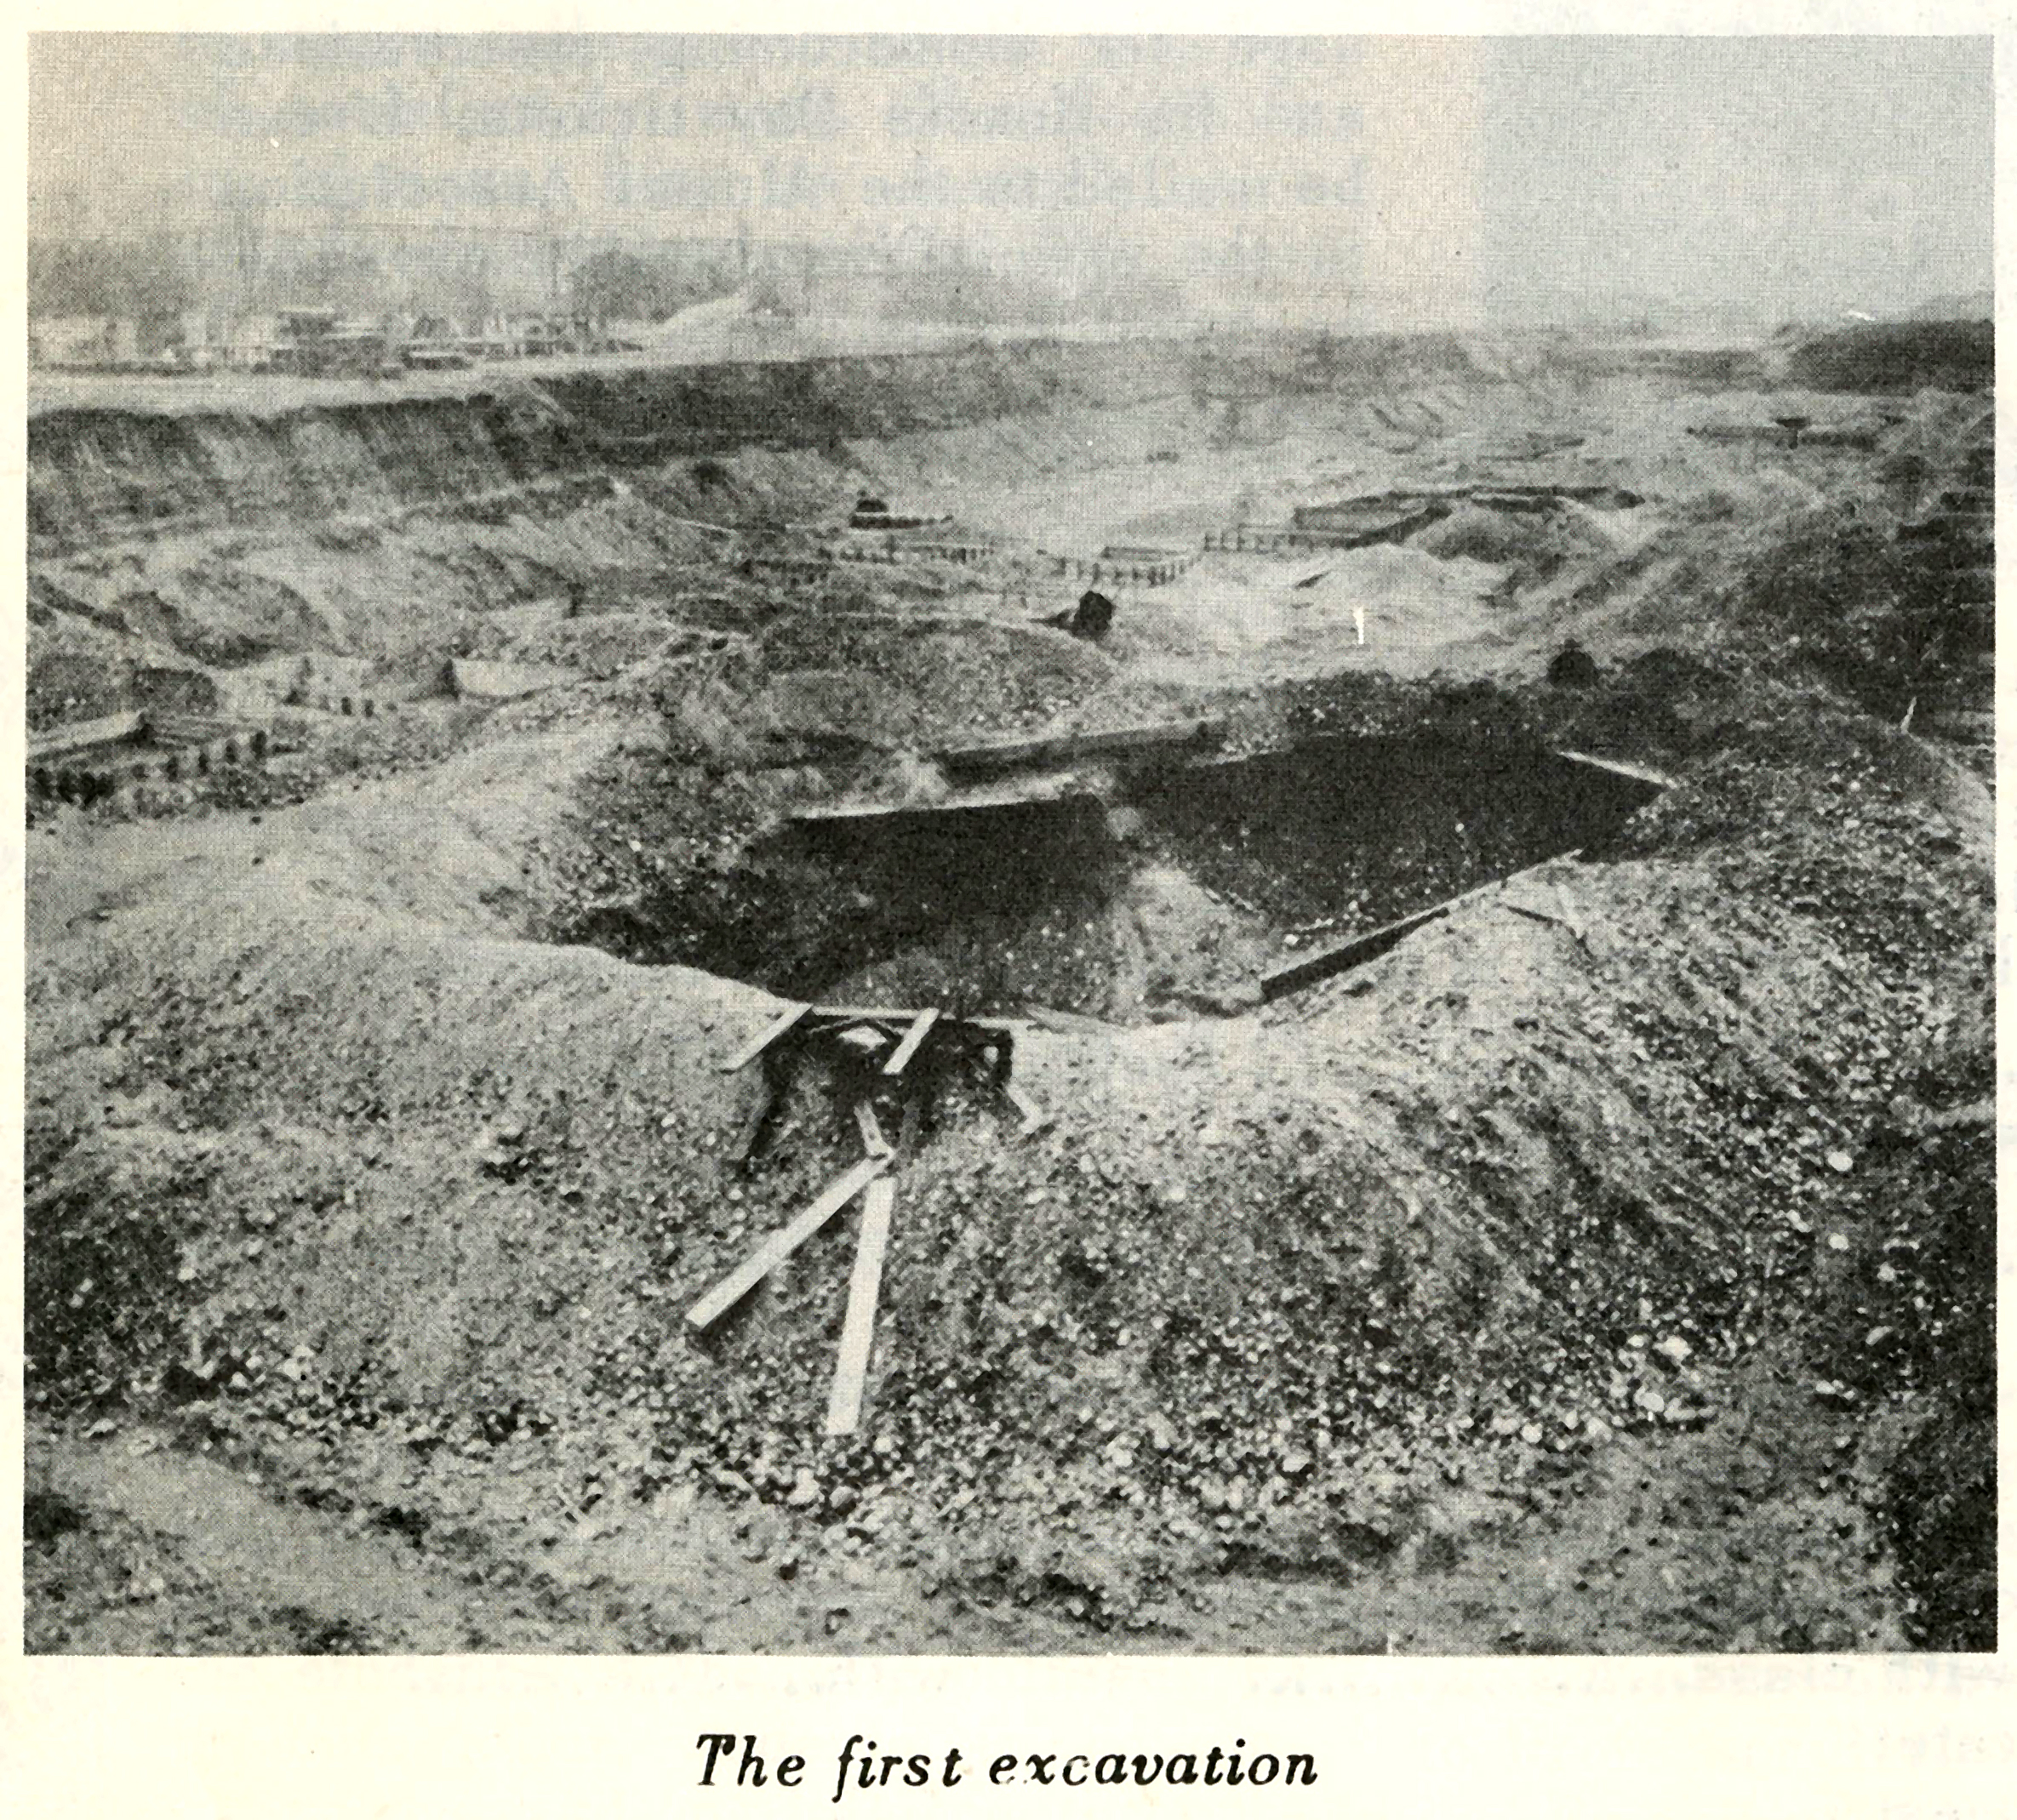 Brooklyn College the First Excavation, 1935-1937